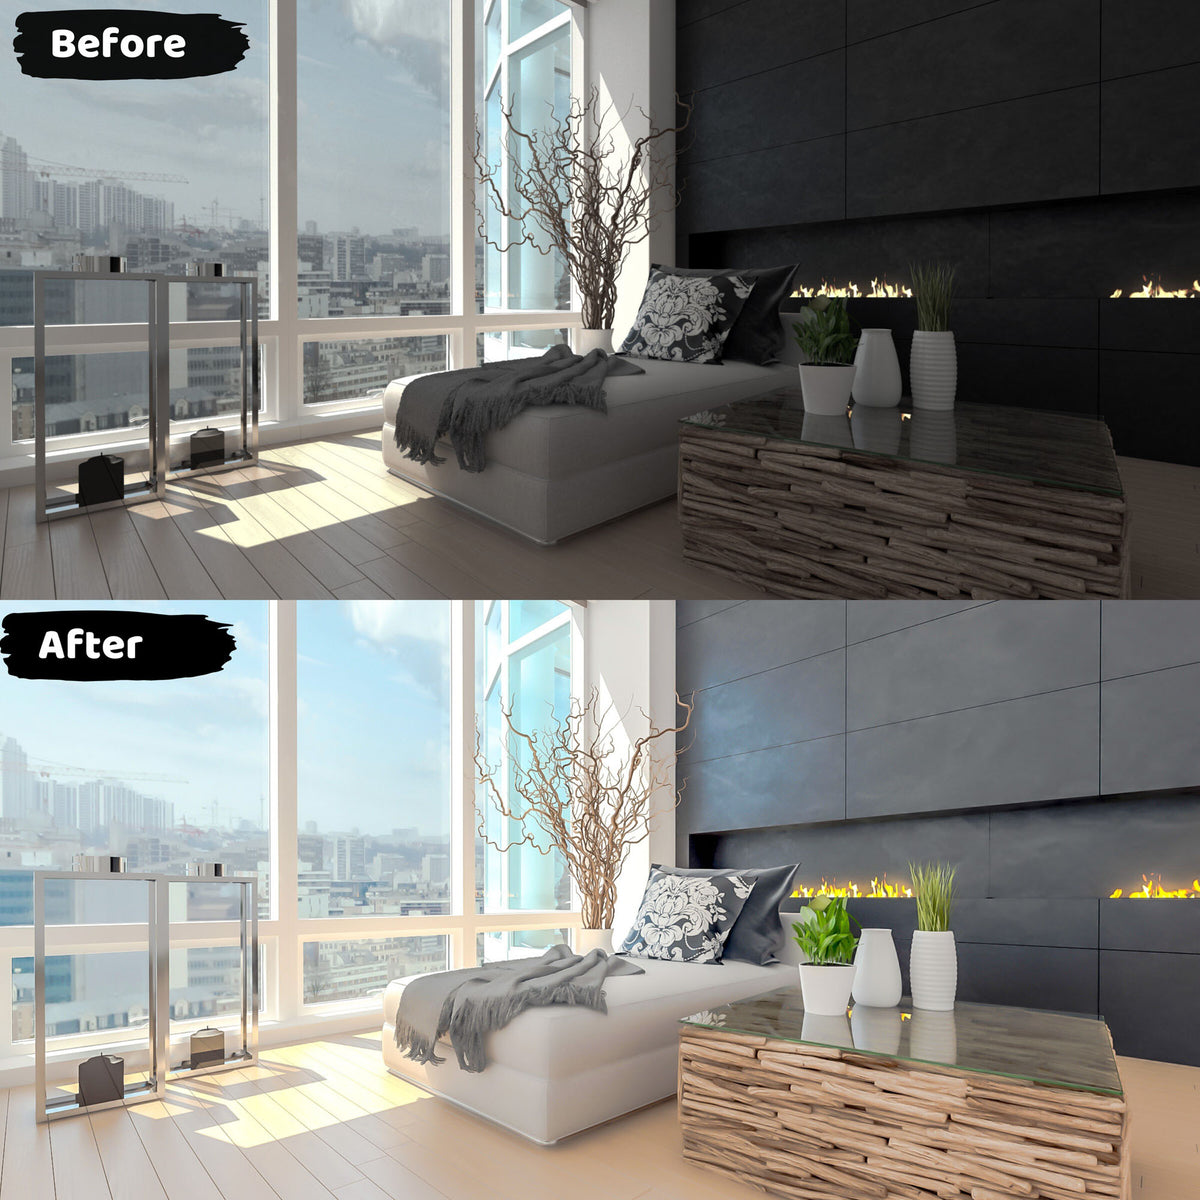 Best Presets for Interior Design and Real Estate Lightroom